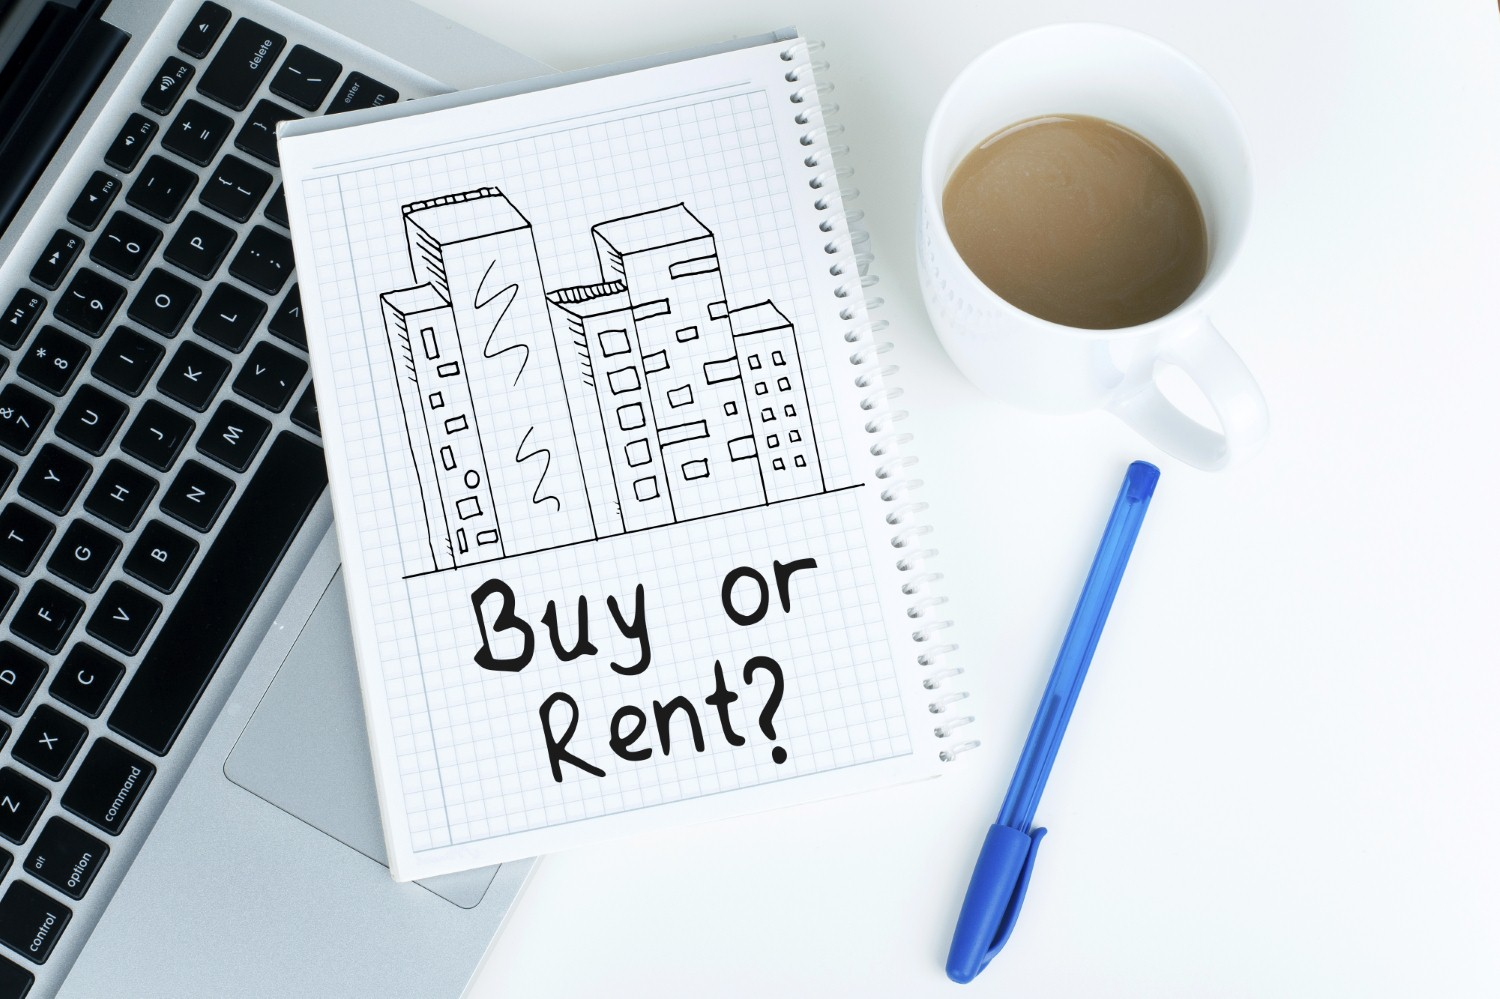 Top reasons renting is a better option than buying for skilled young professionals [Photo: iStock/Oko_Swan0murphy]